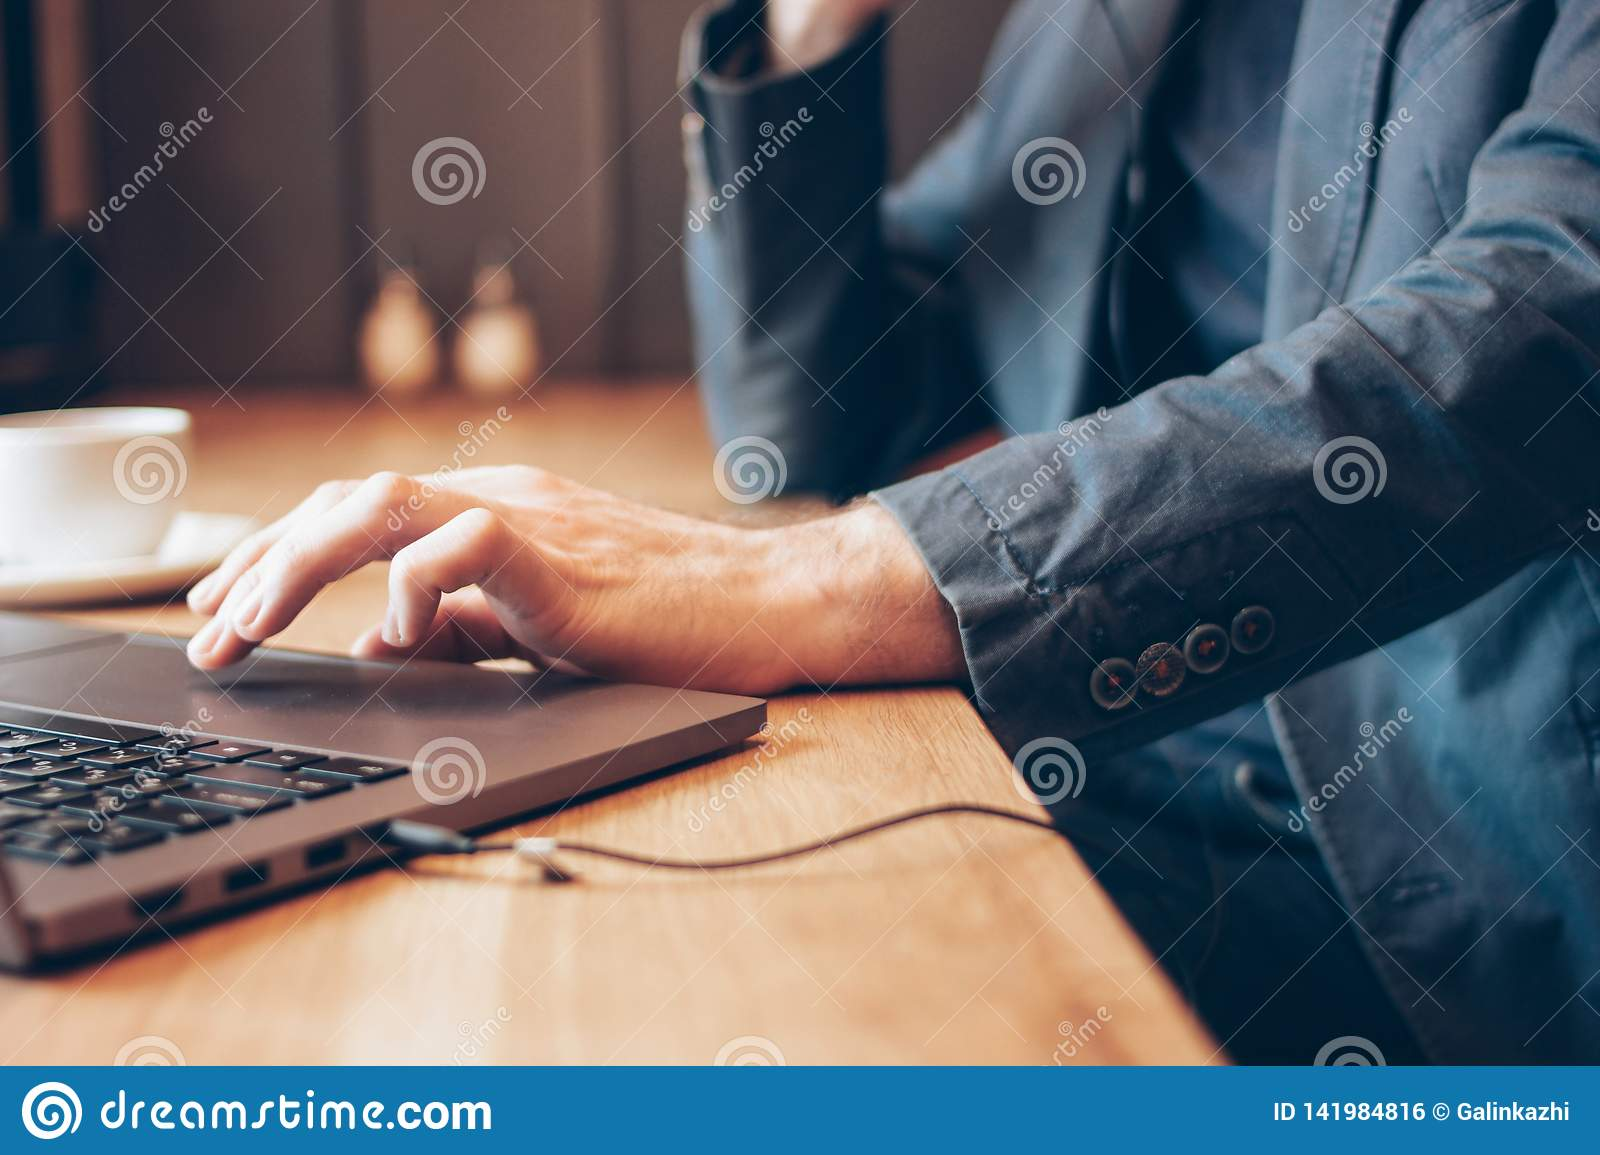 The man in blue suit with headphones working on a laptop in cafe